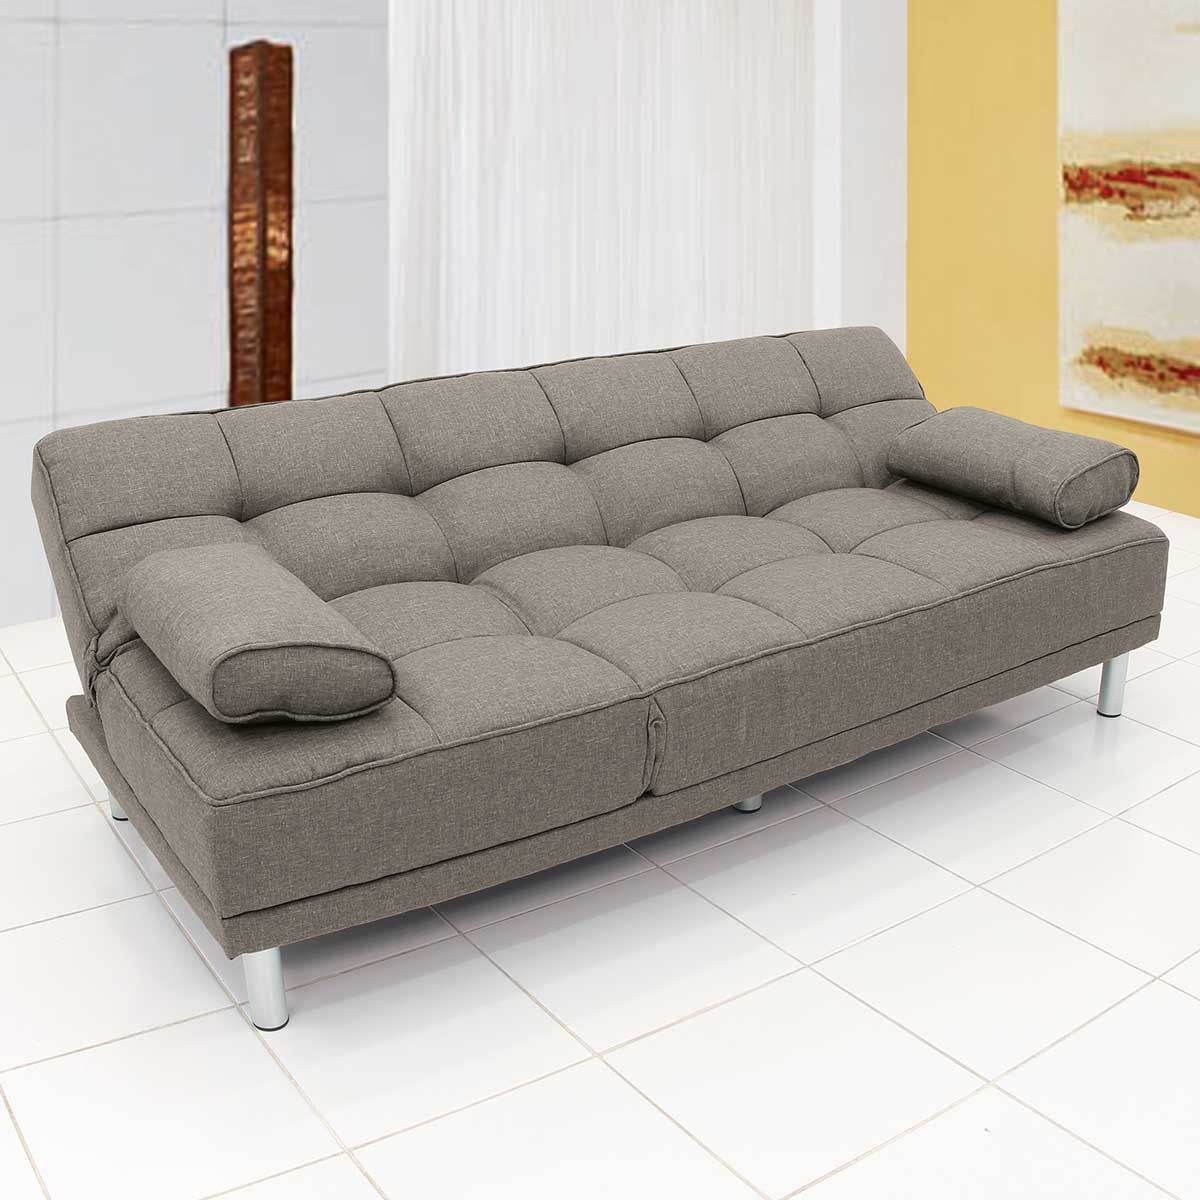 Sof cama chaise concorde taupe for Sofa cama chaise longue piel